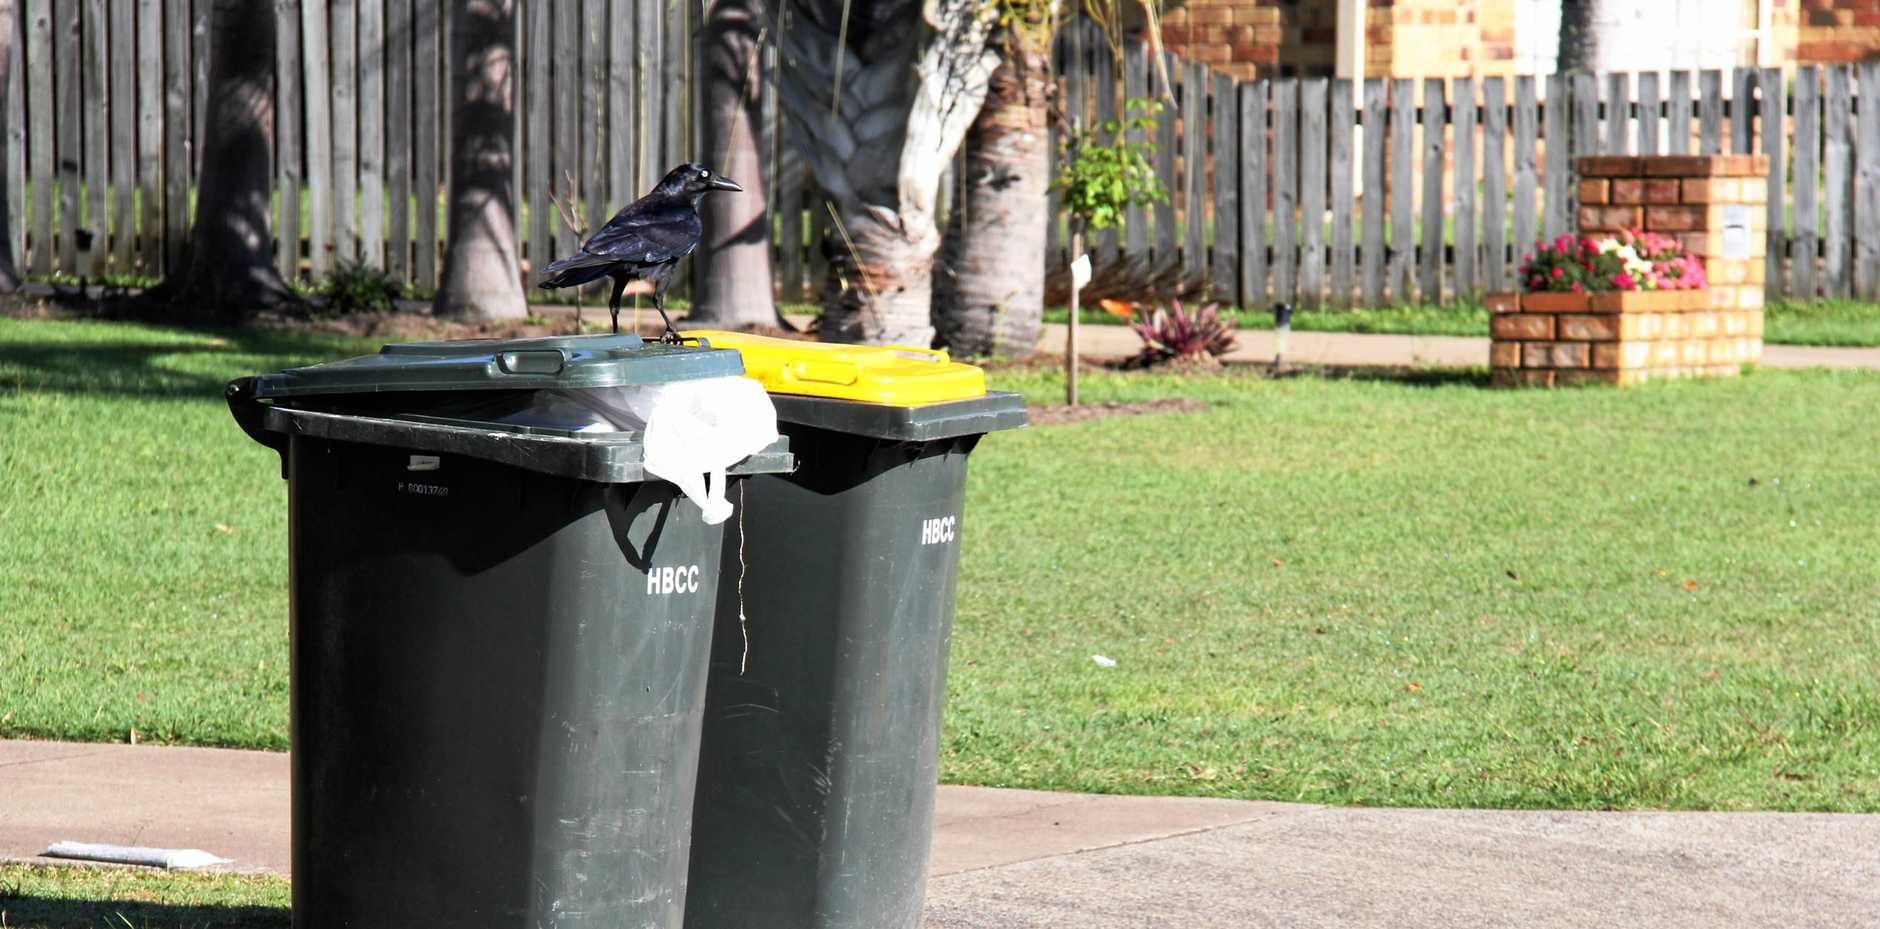 FINES in excess of $2500 for wheelie bins left out too long has left locals in a stink.